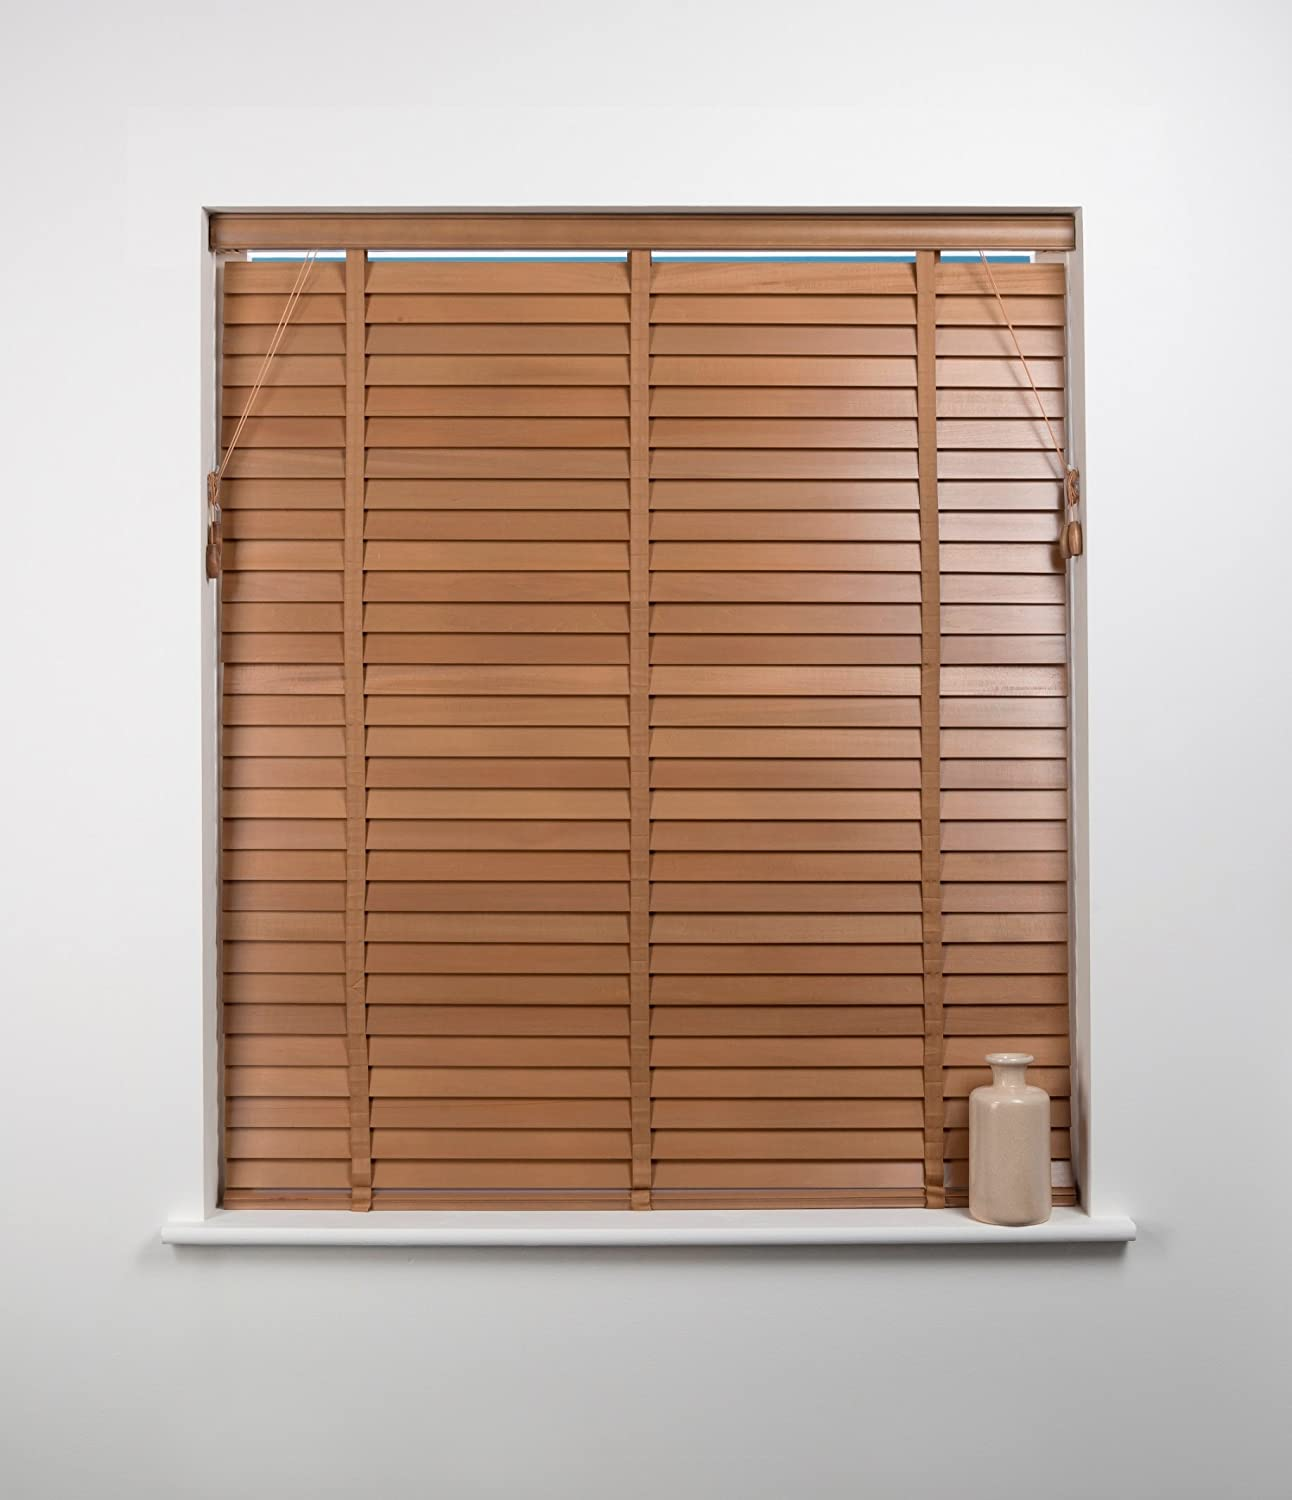 50mm Wood Venetian Blind, Oak, 60cm Wide x 160cm Drop Sunflex